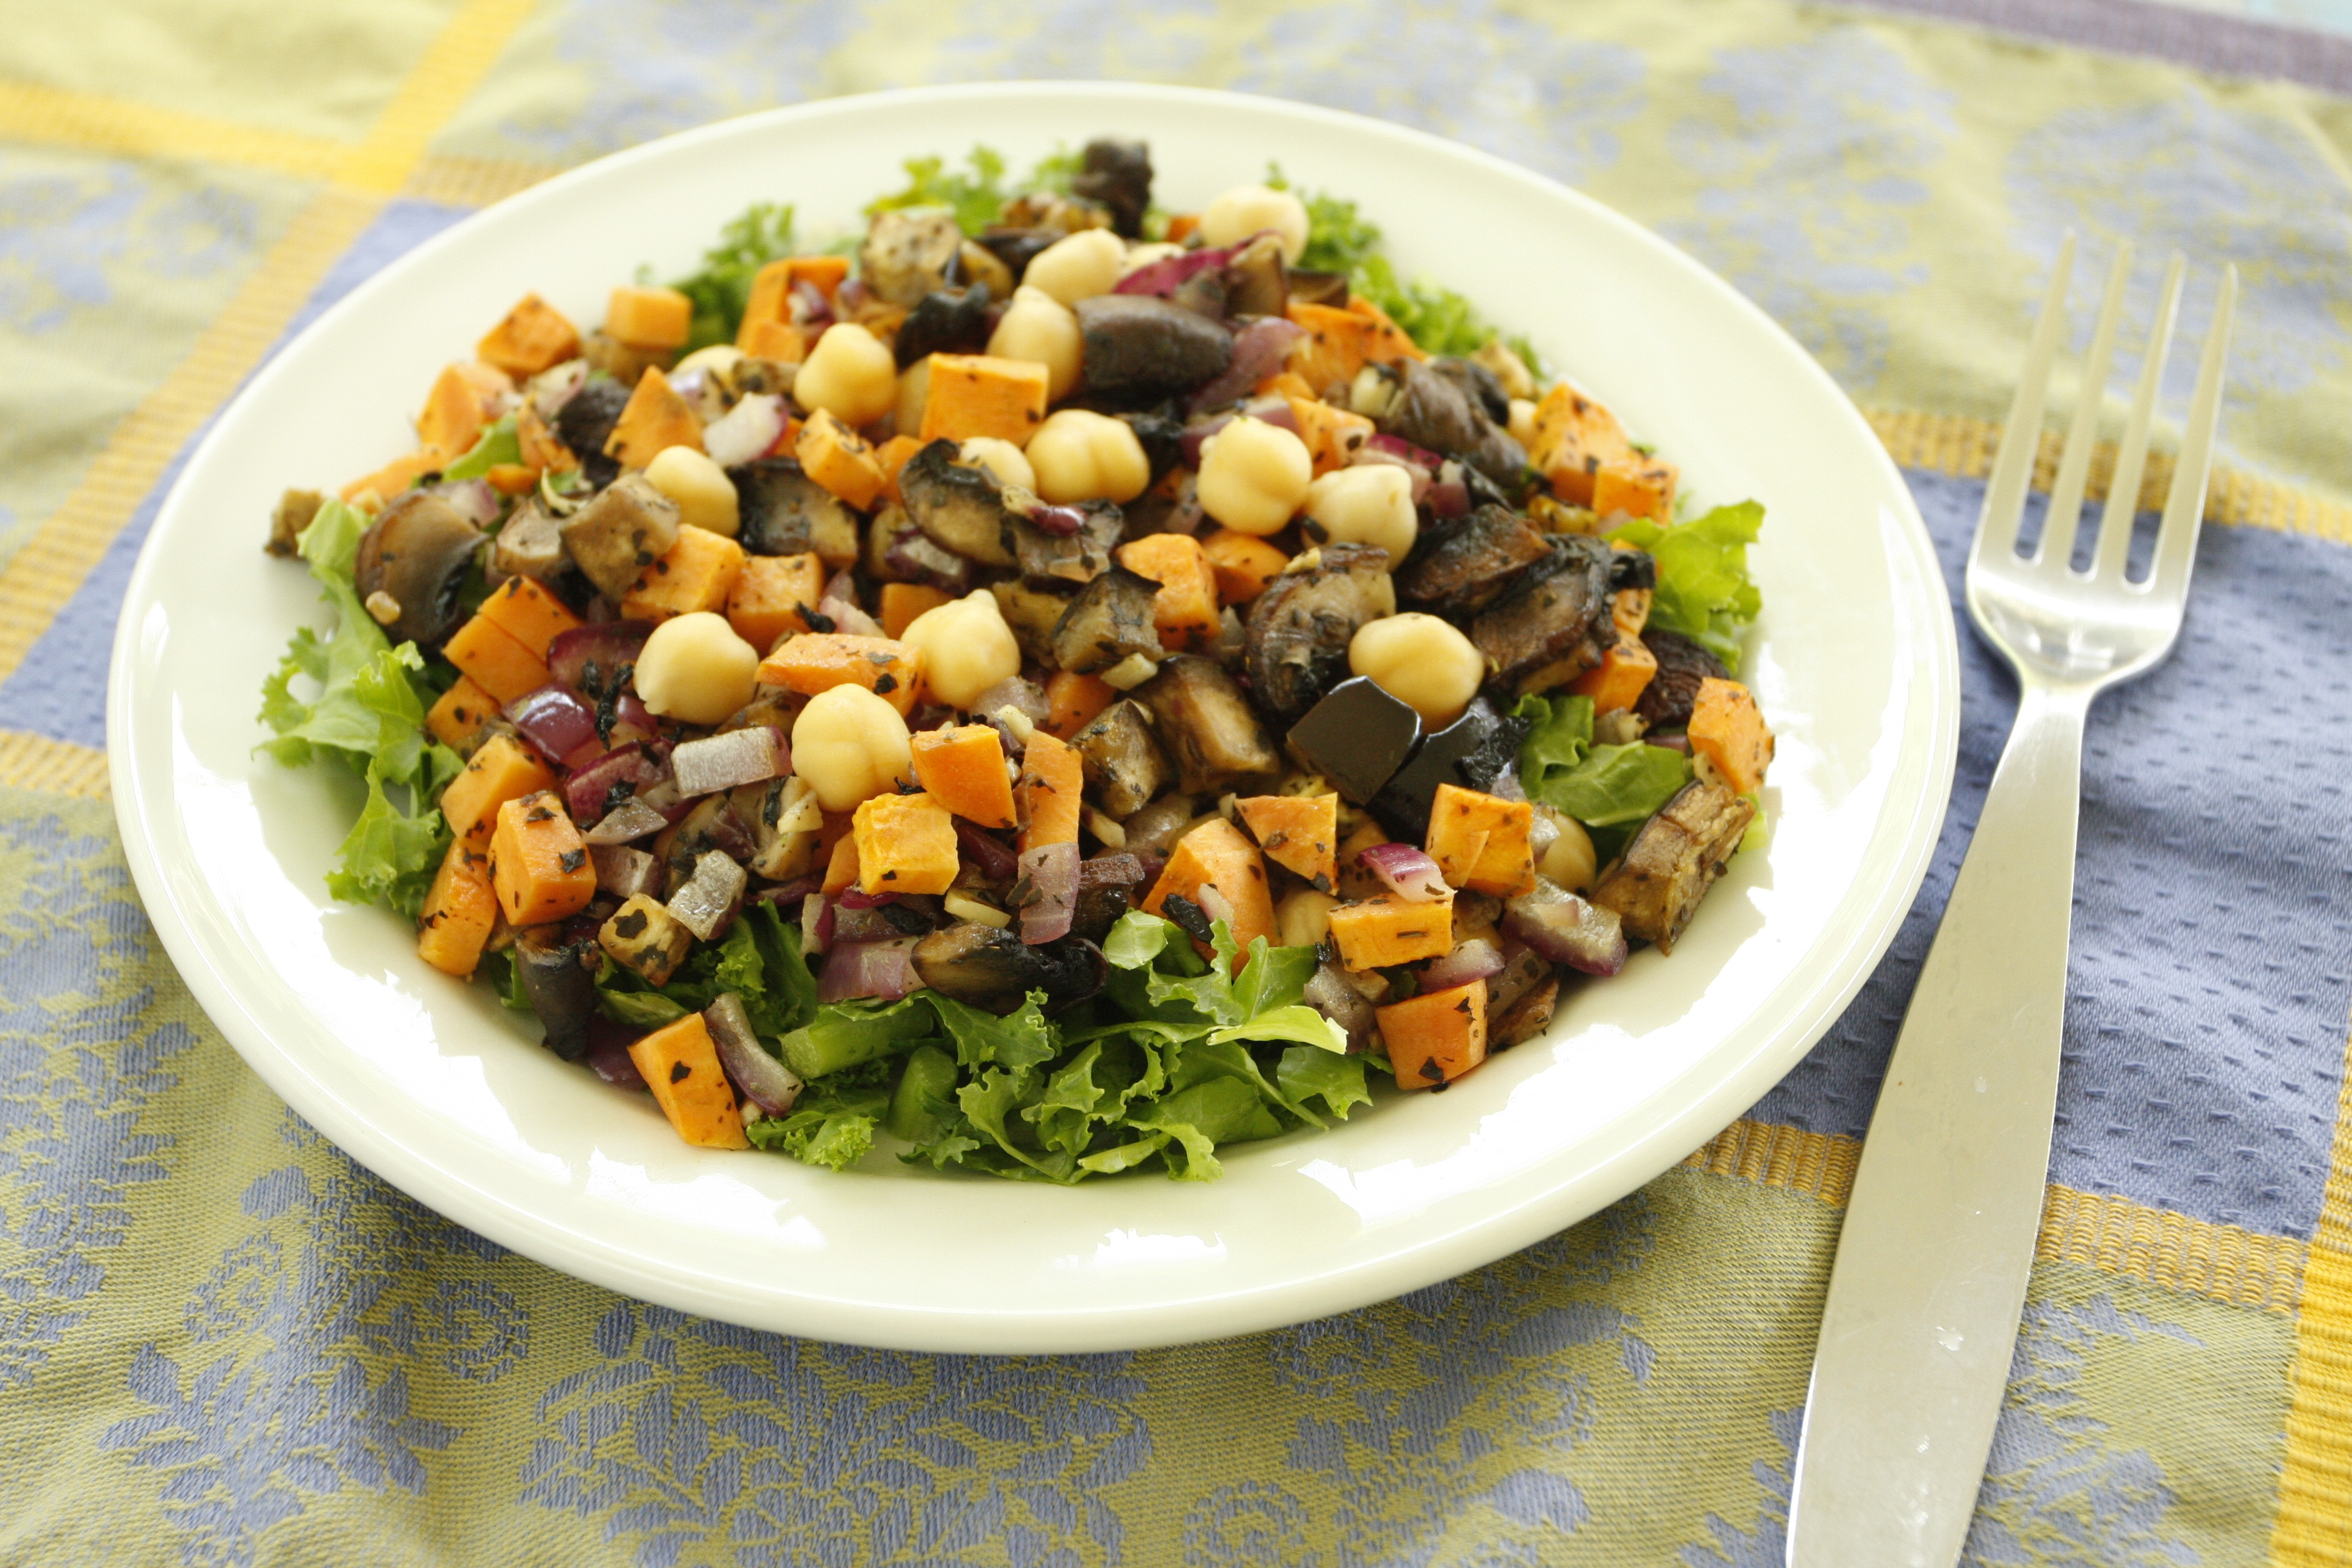 Baked vegetables with chickpeas on salad